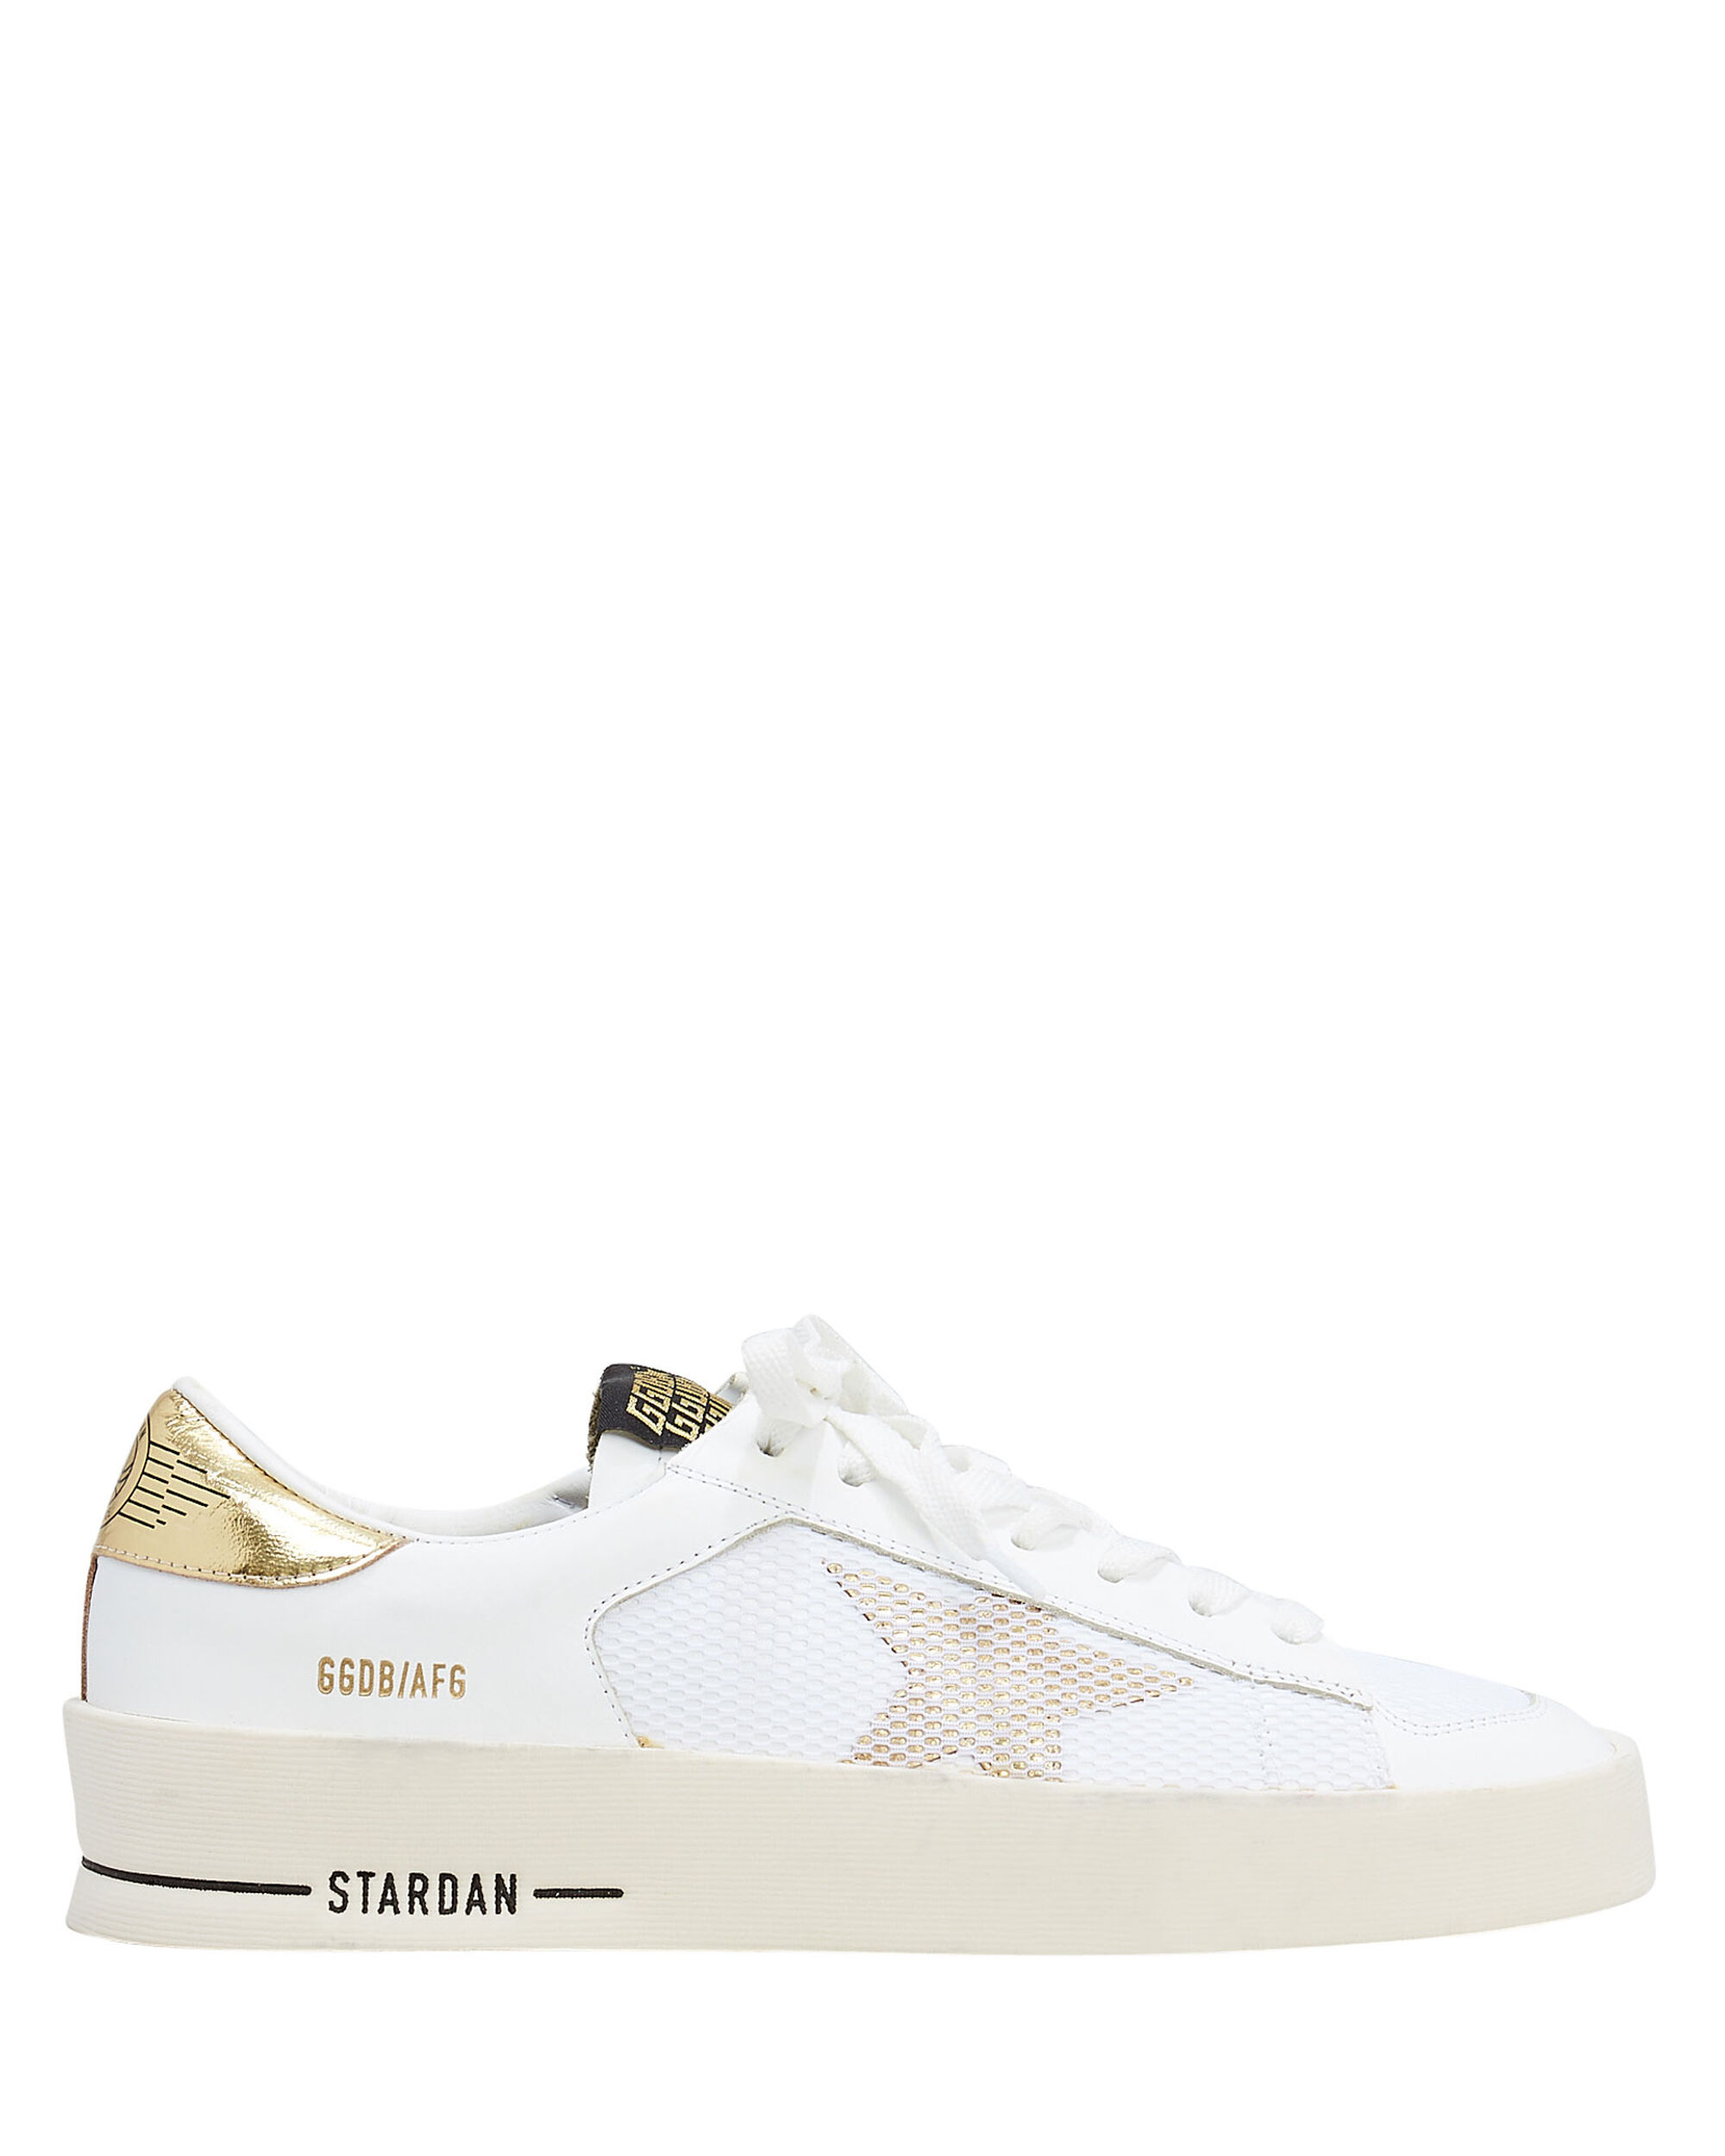 Star Dan White Leather Sneakers, WHITE, hi-res